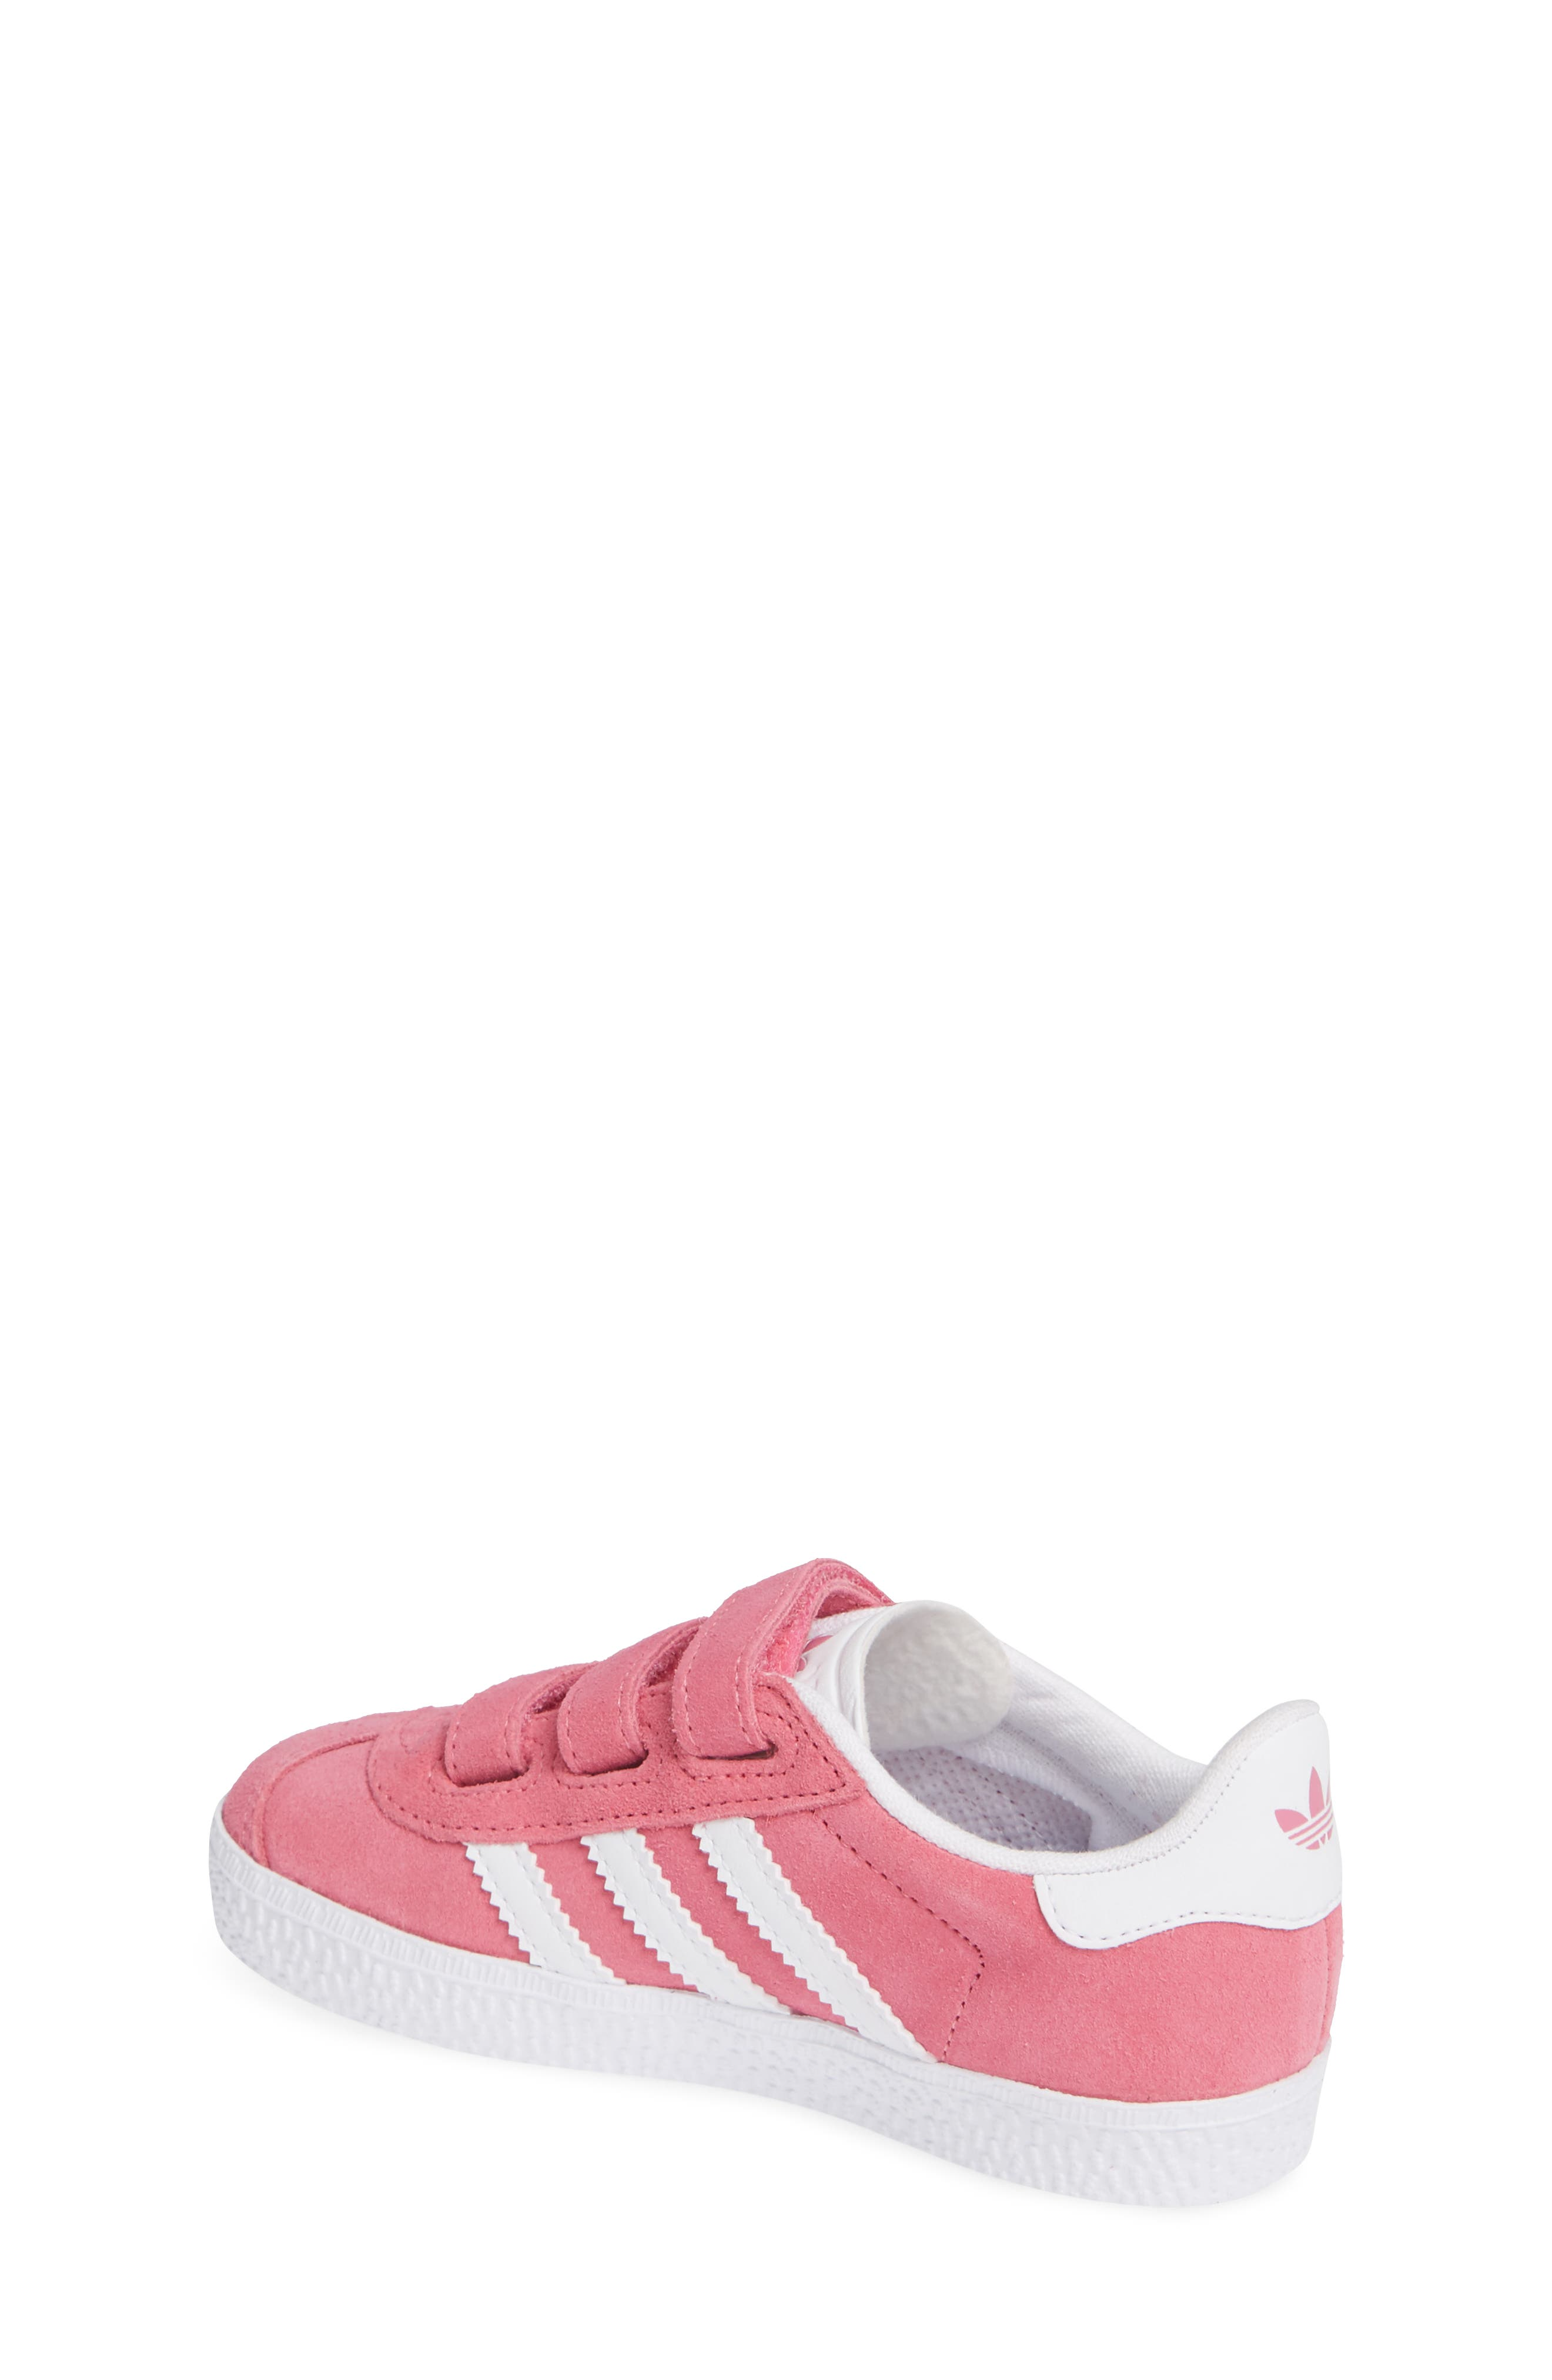 Gazelle Sneaker,                             Alternate thumbnail 2, color,                             SEMI SOLAR PINK/ WHITE